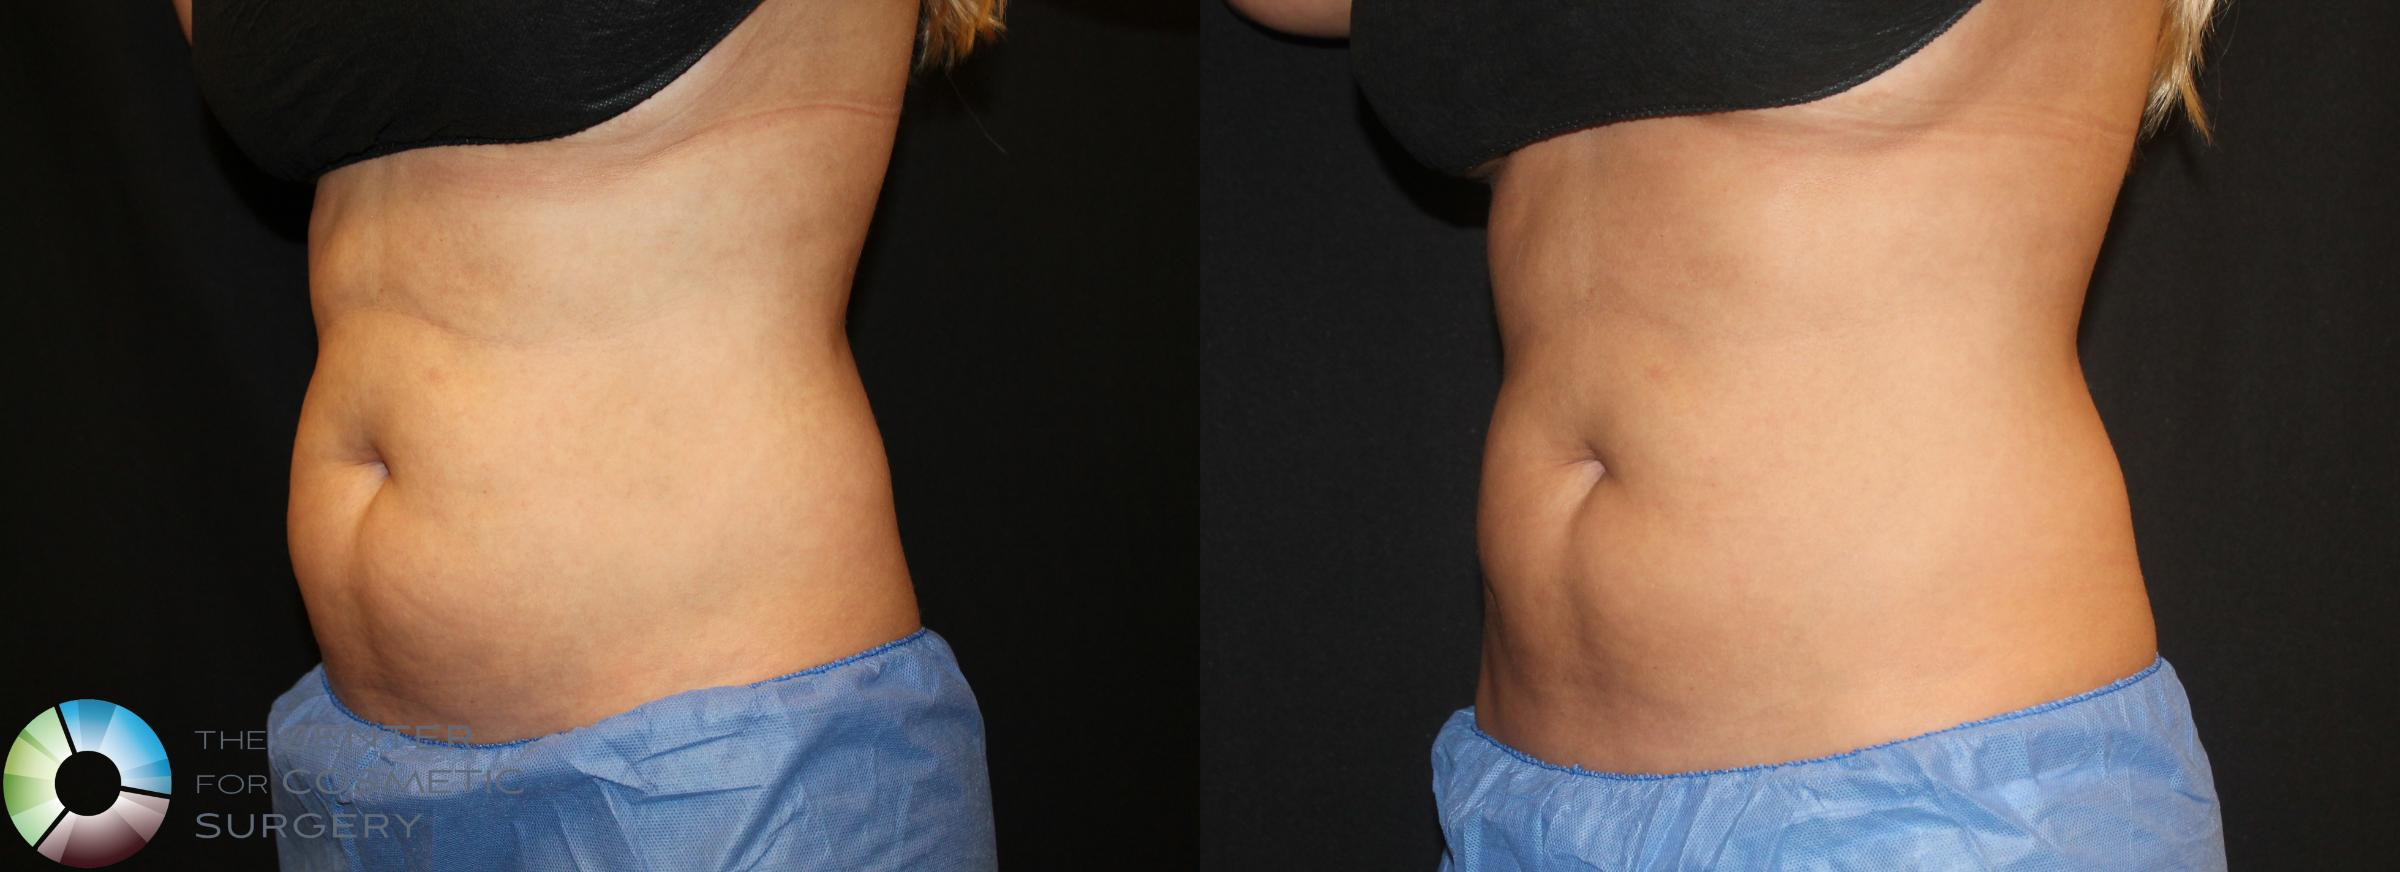 CoolSculpting Case 730 Before & After View #1 | Golden, CO | The Center for Cosmetic Surgery